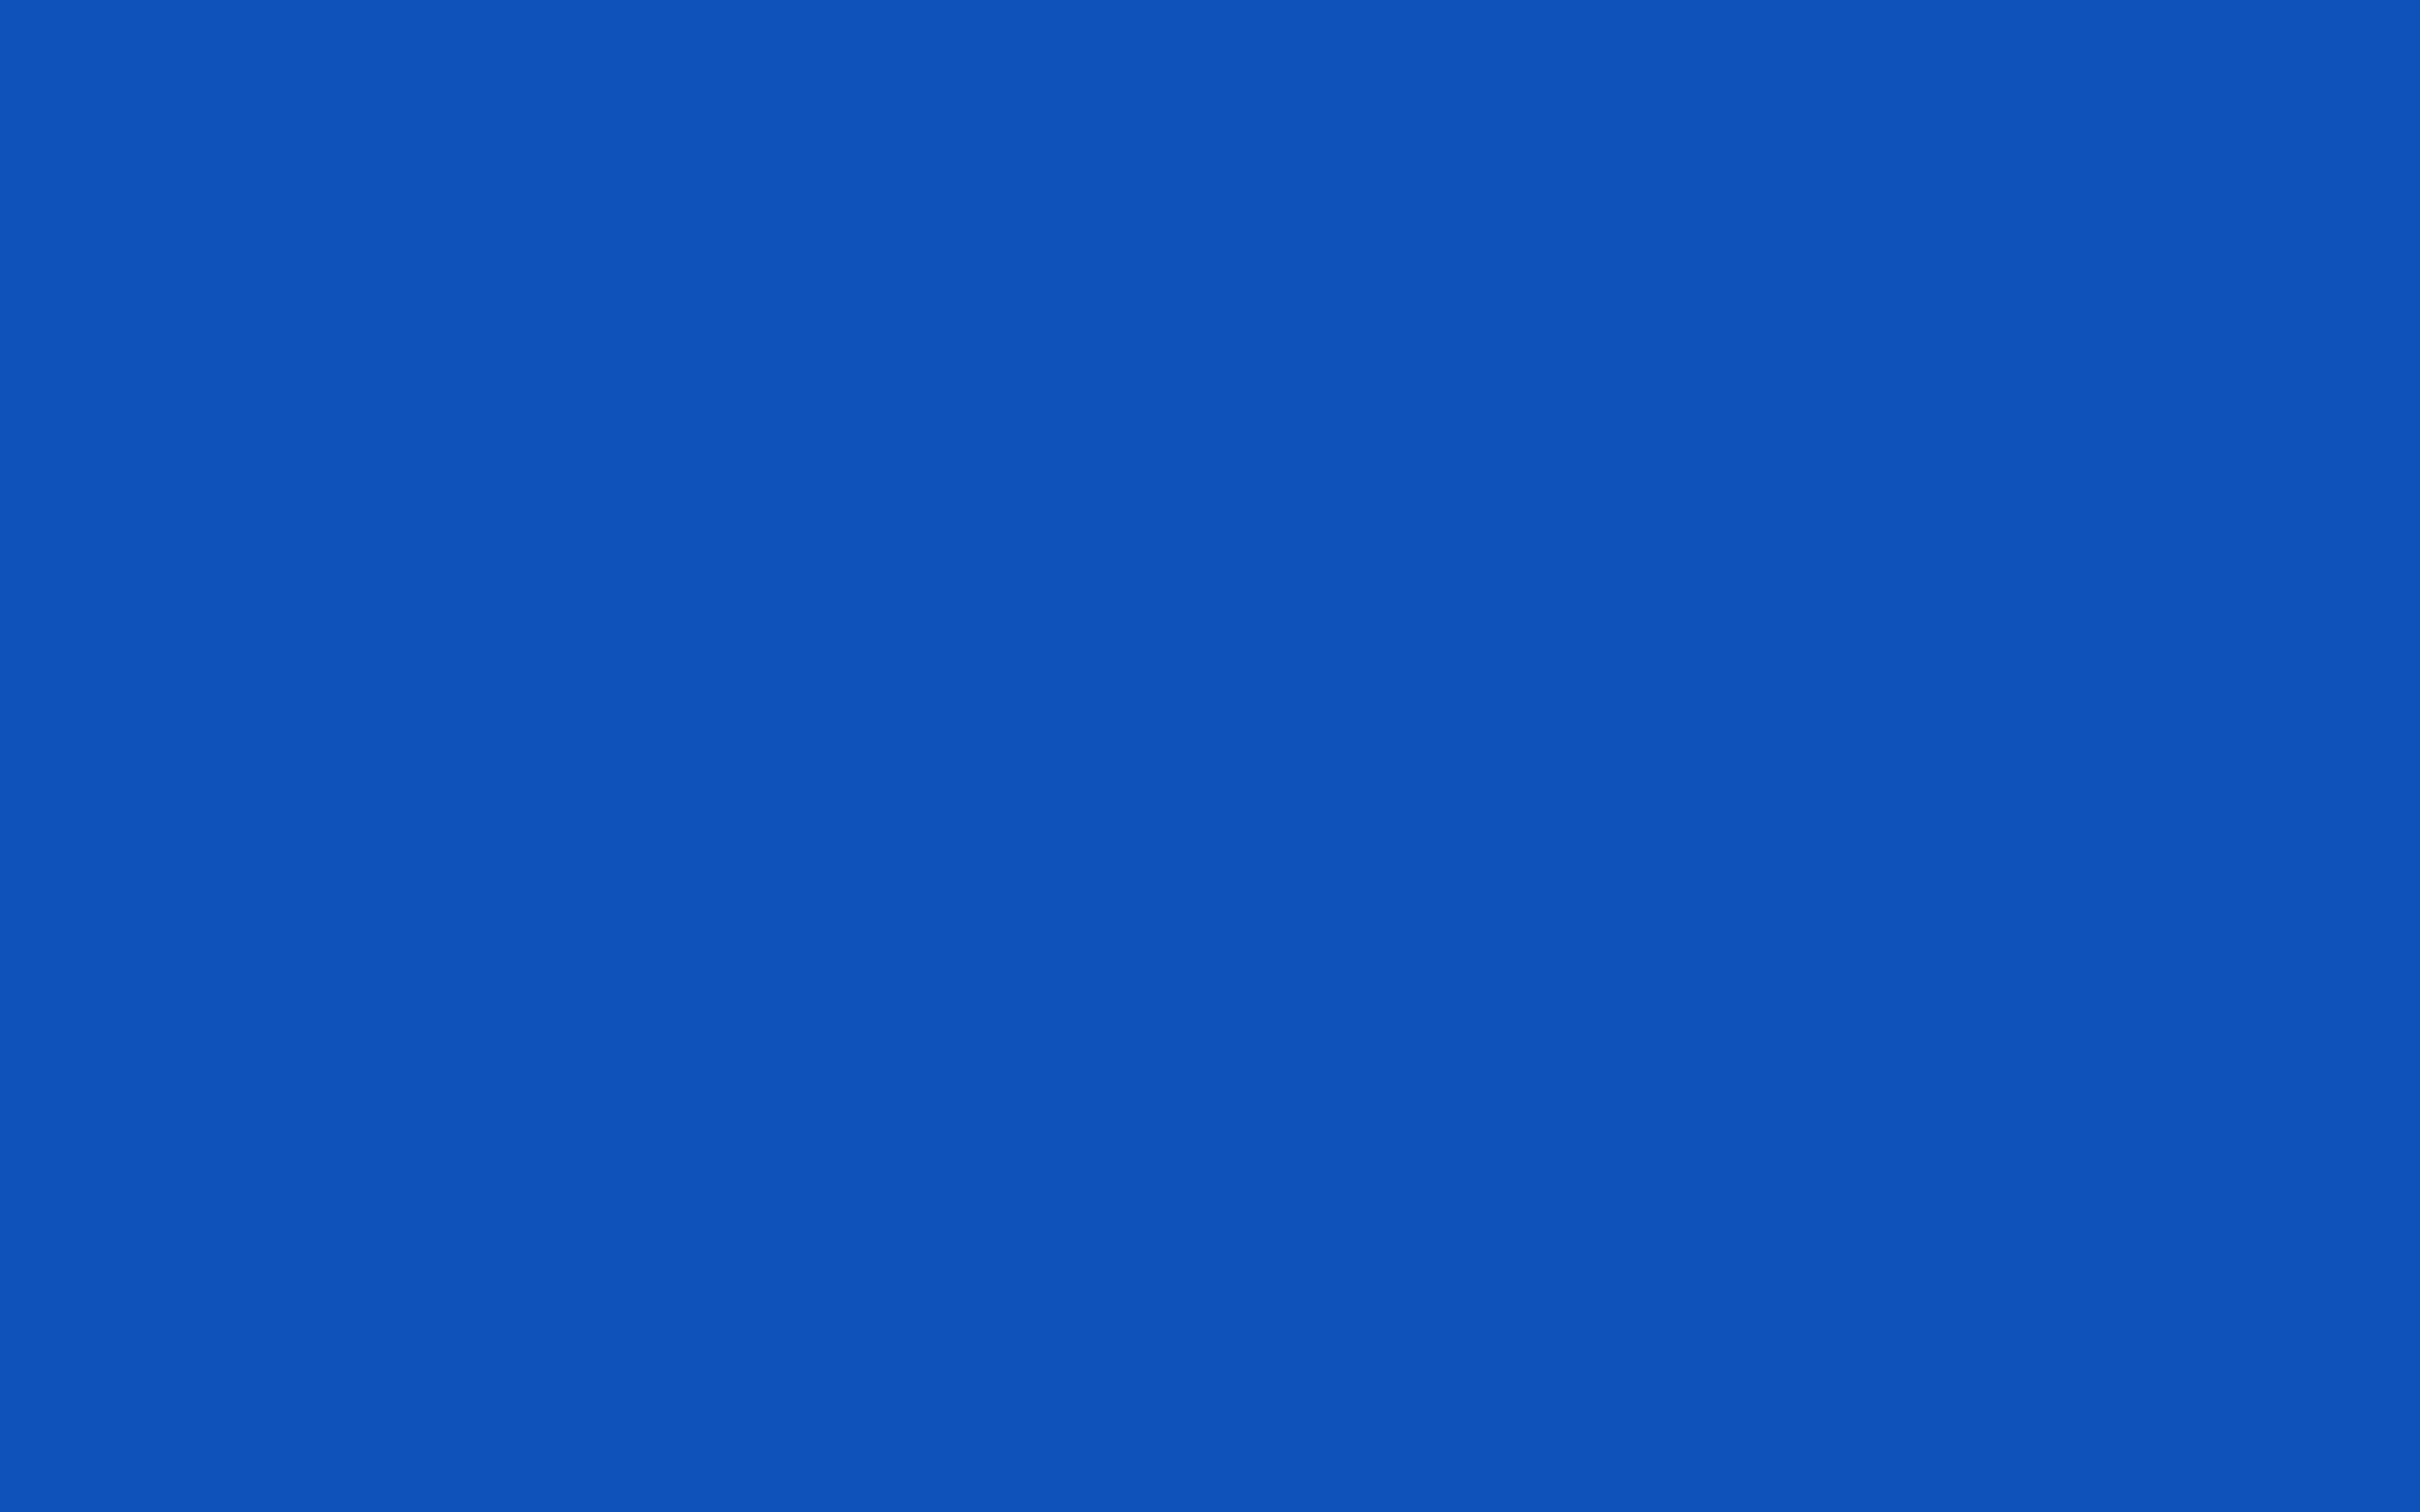 2560x1600 Sapphire Solid Color Background